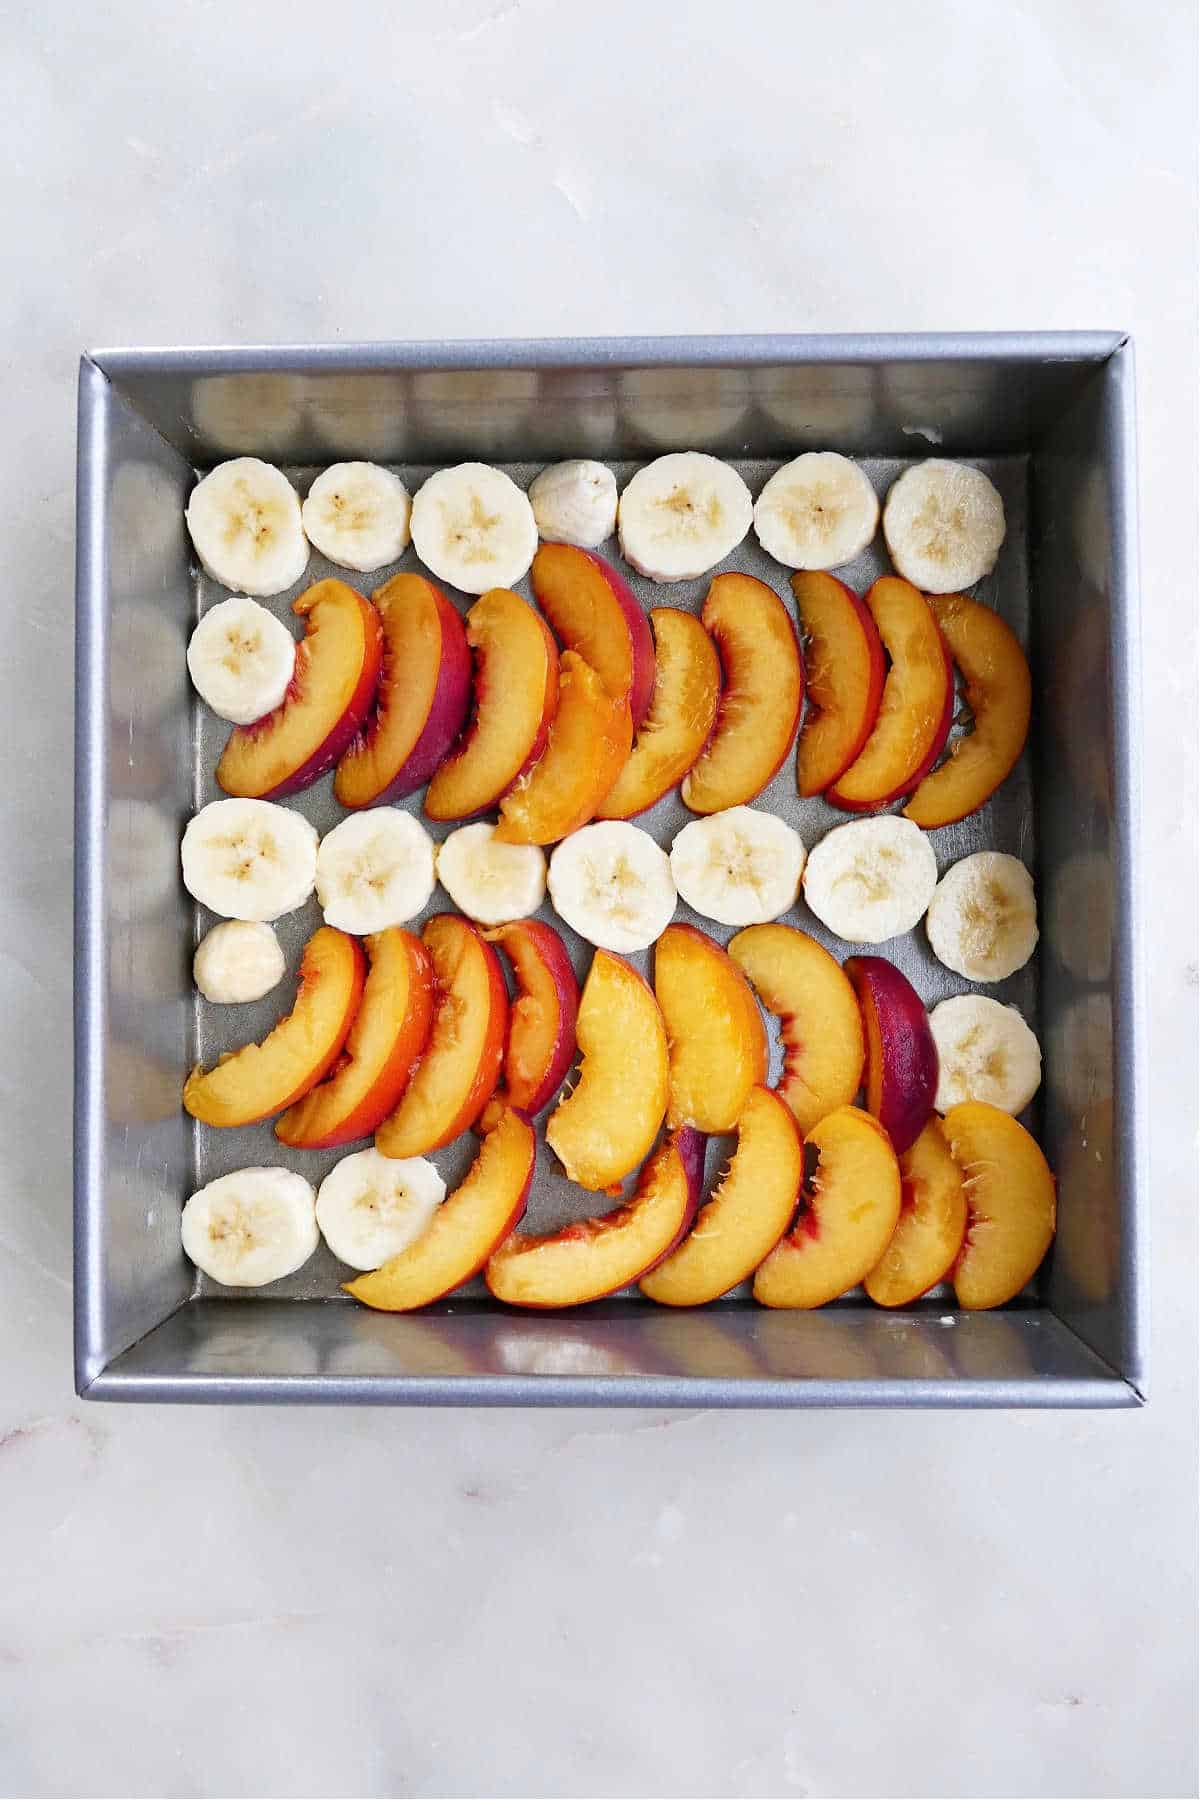 sliced bananas and sliced peaches spread out on a greased baking dish